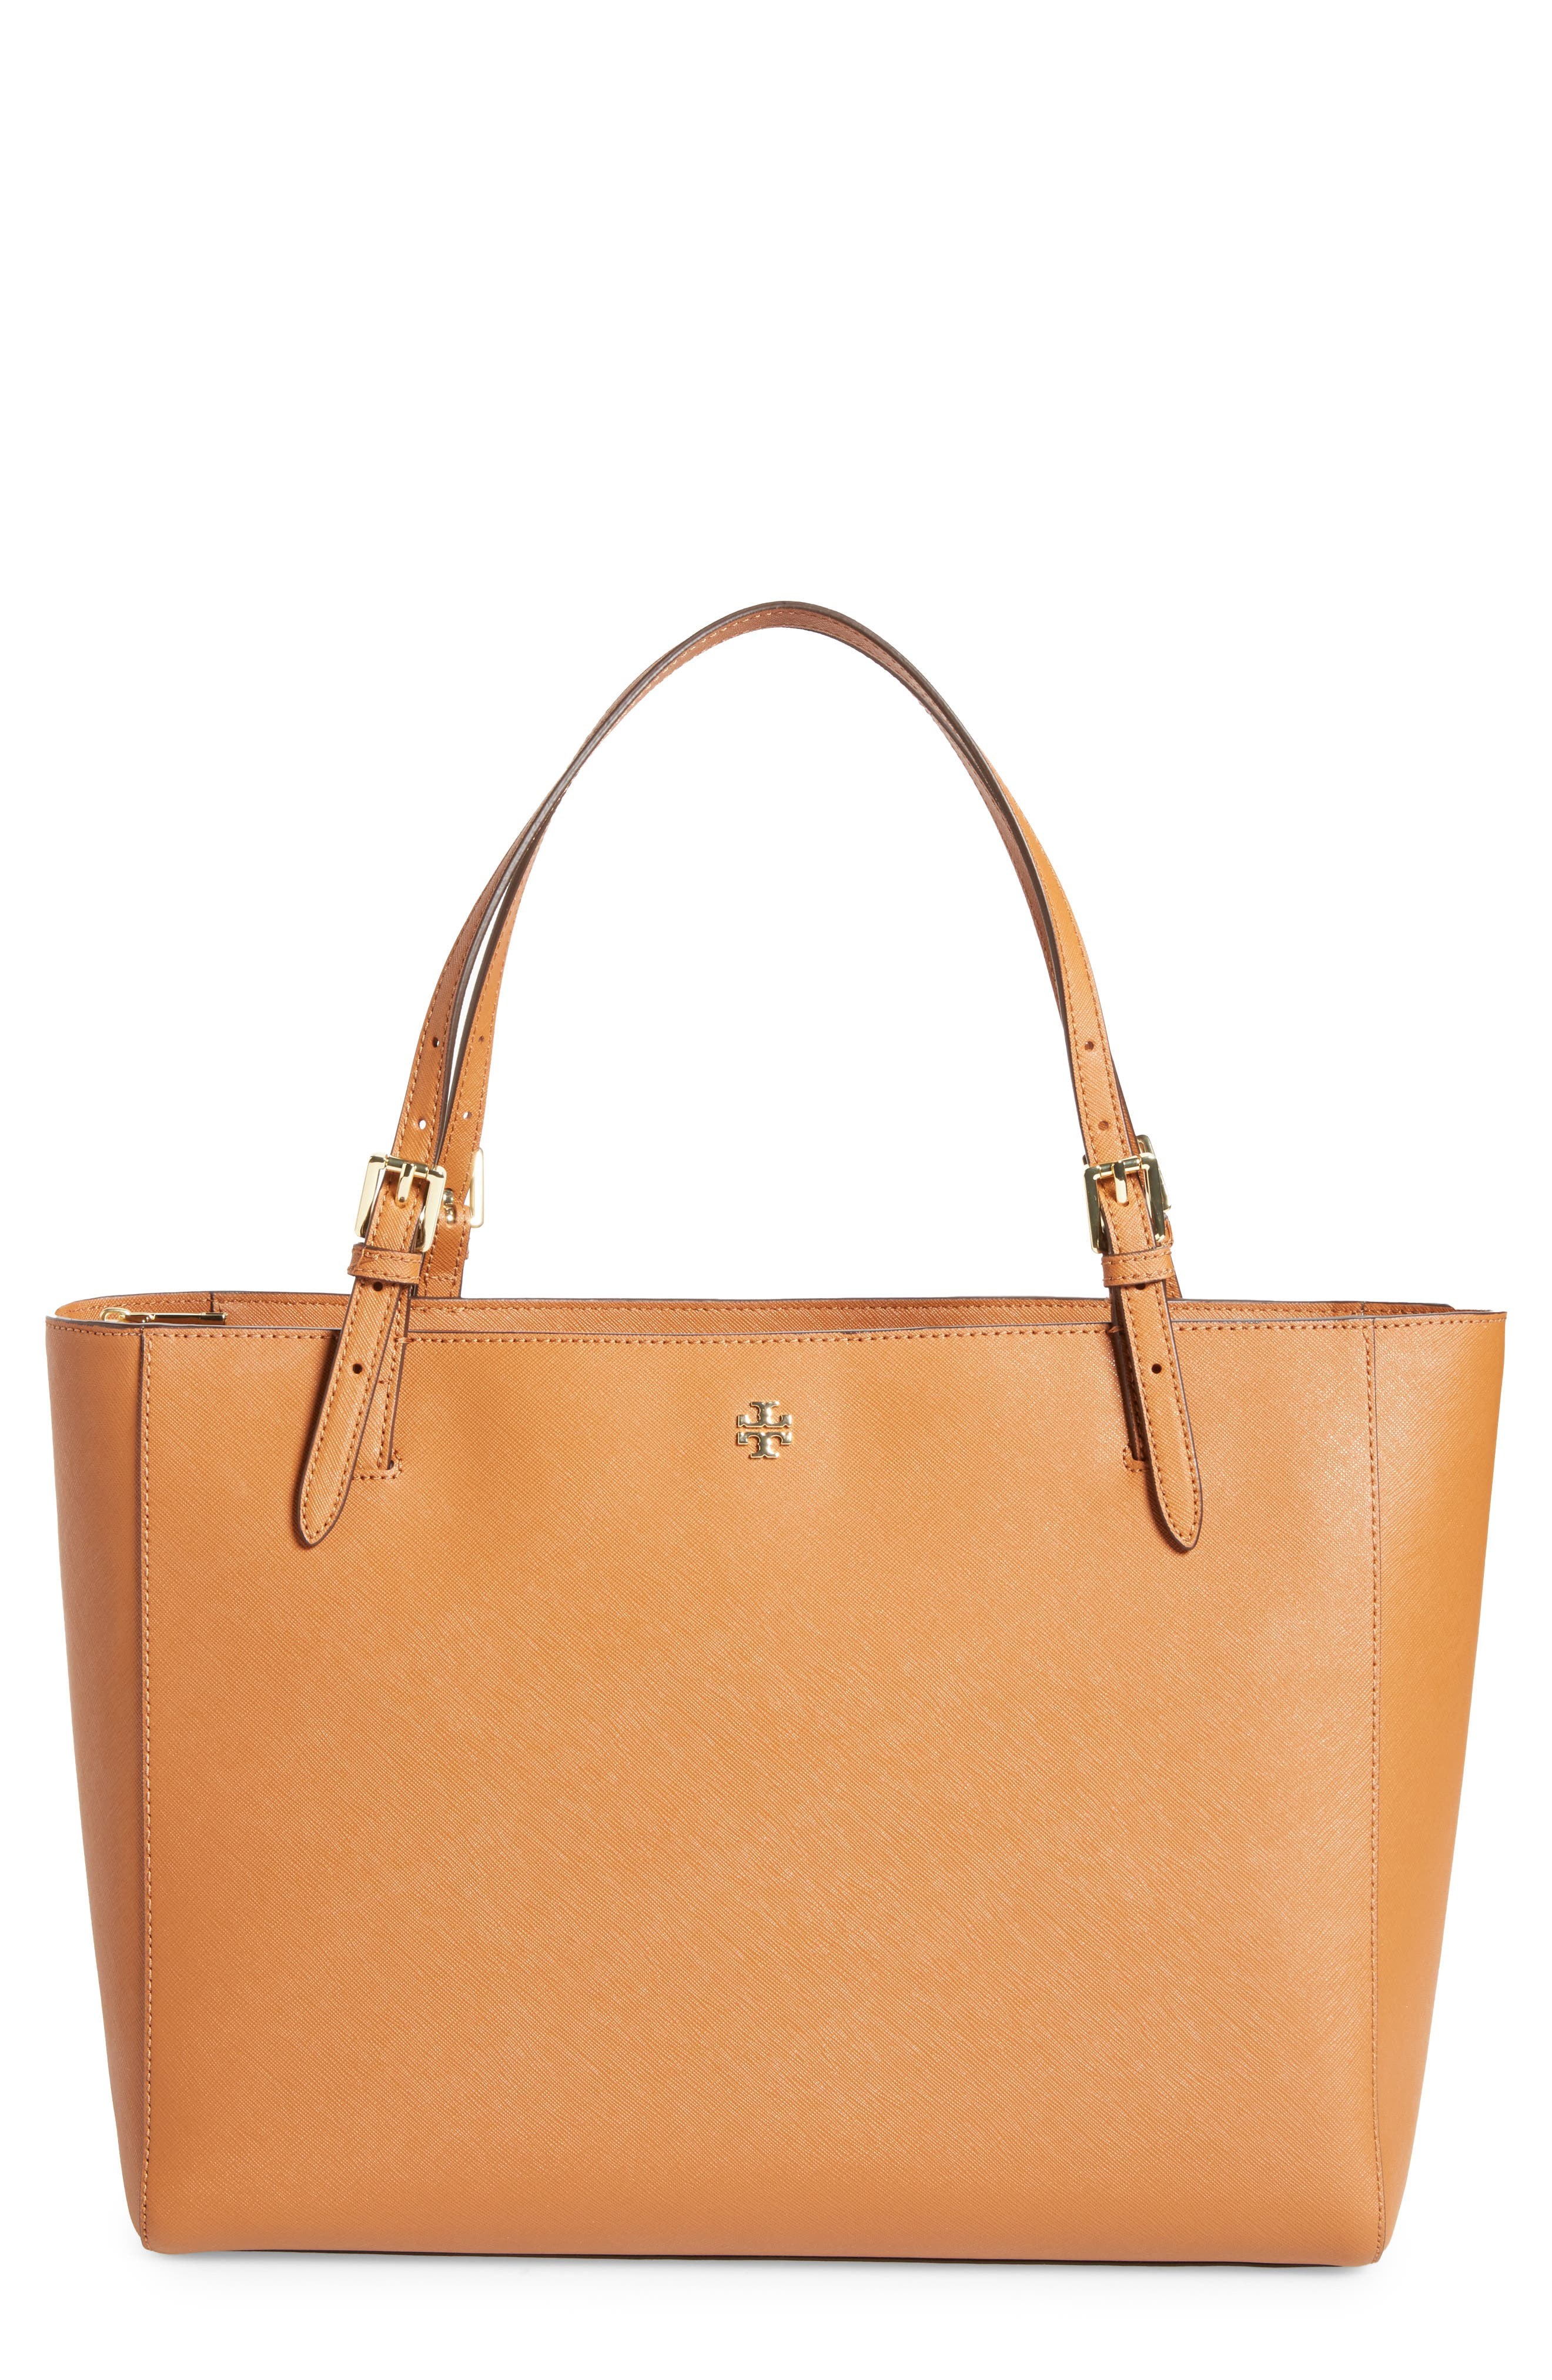 Tory Burch 'York' Buckle Tote